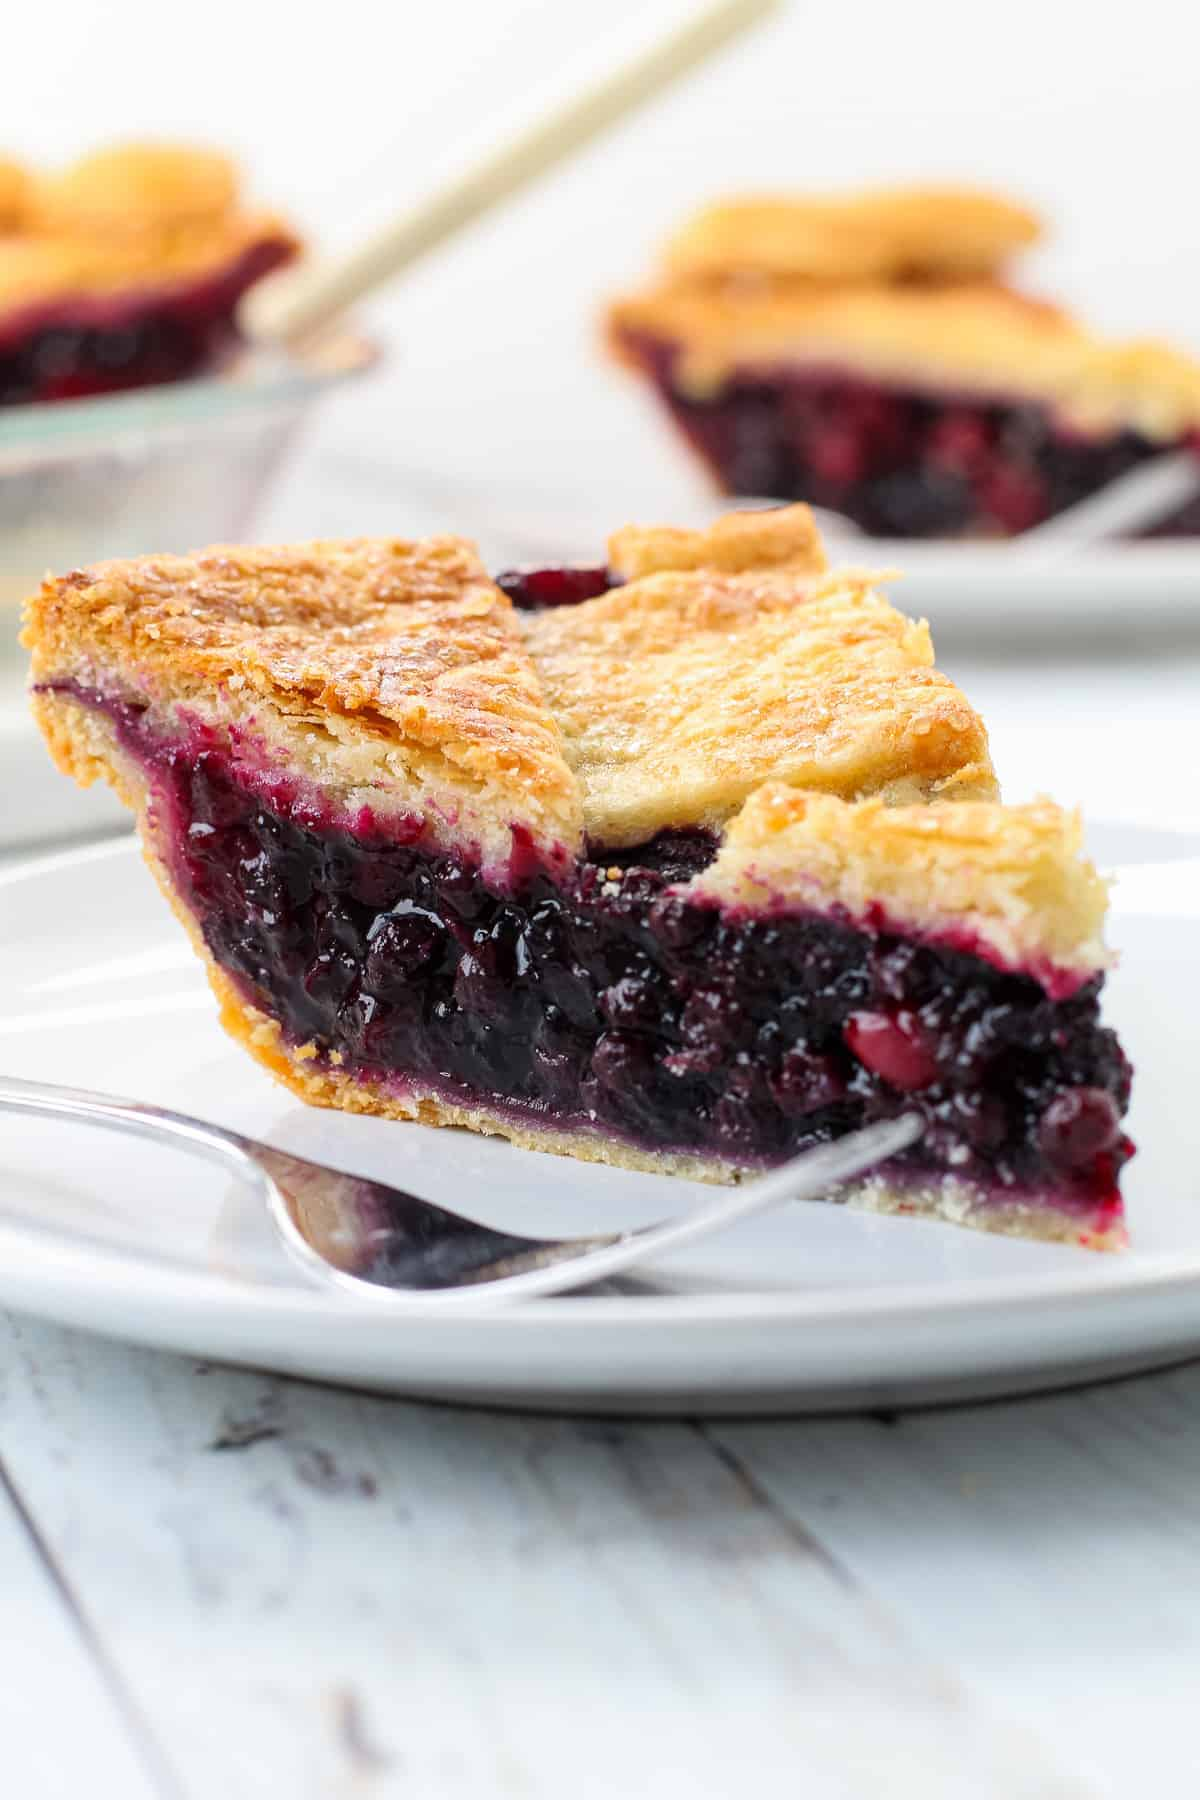 A slice of cranberry blueberry pie